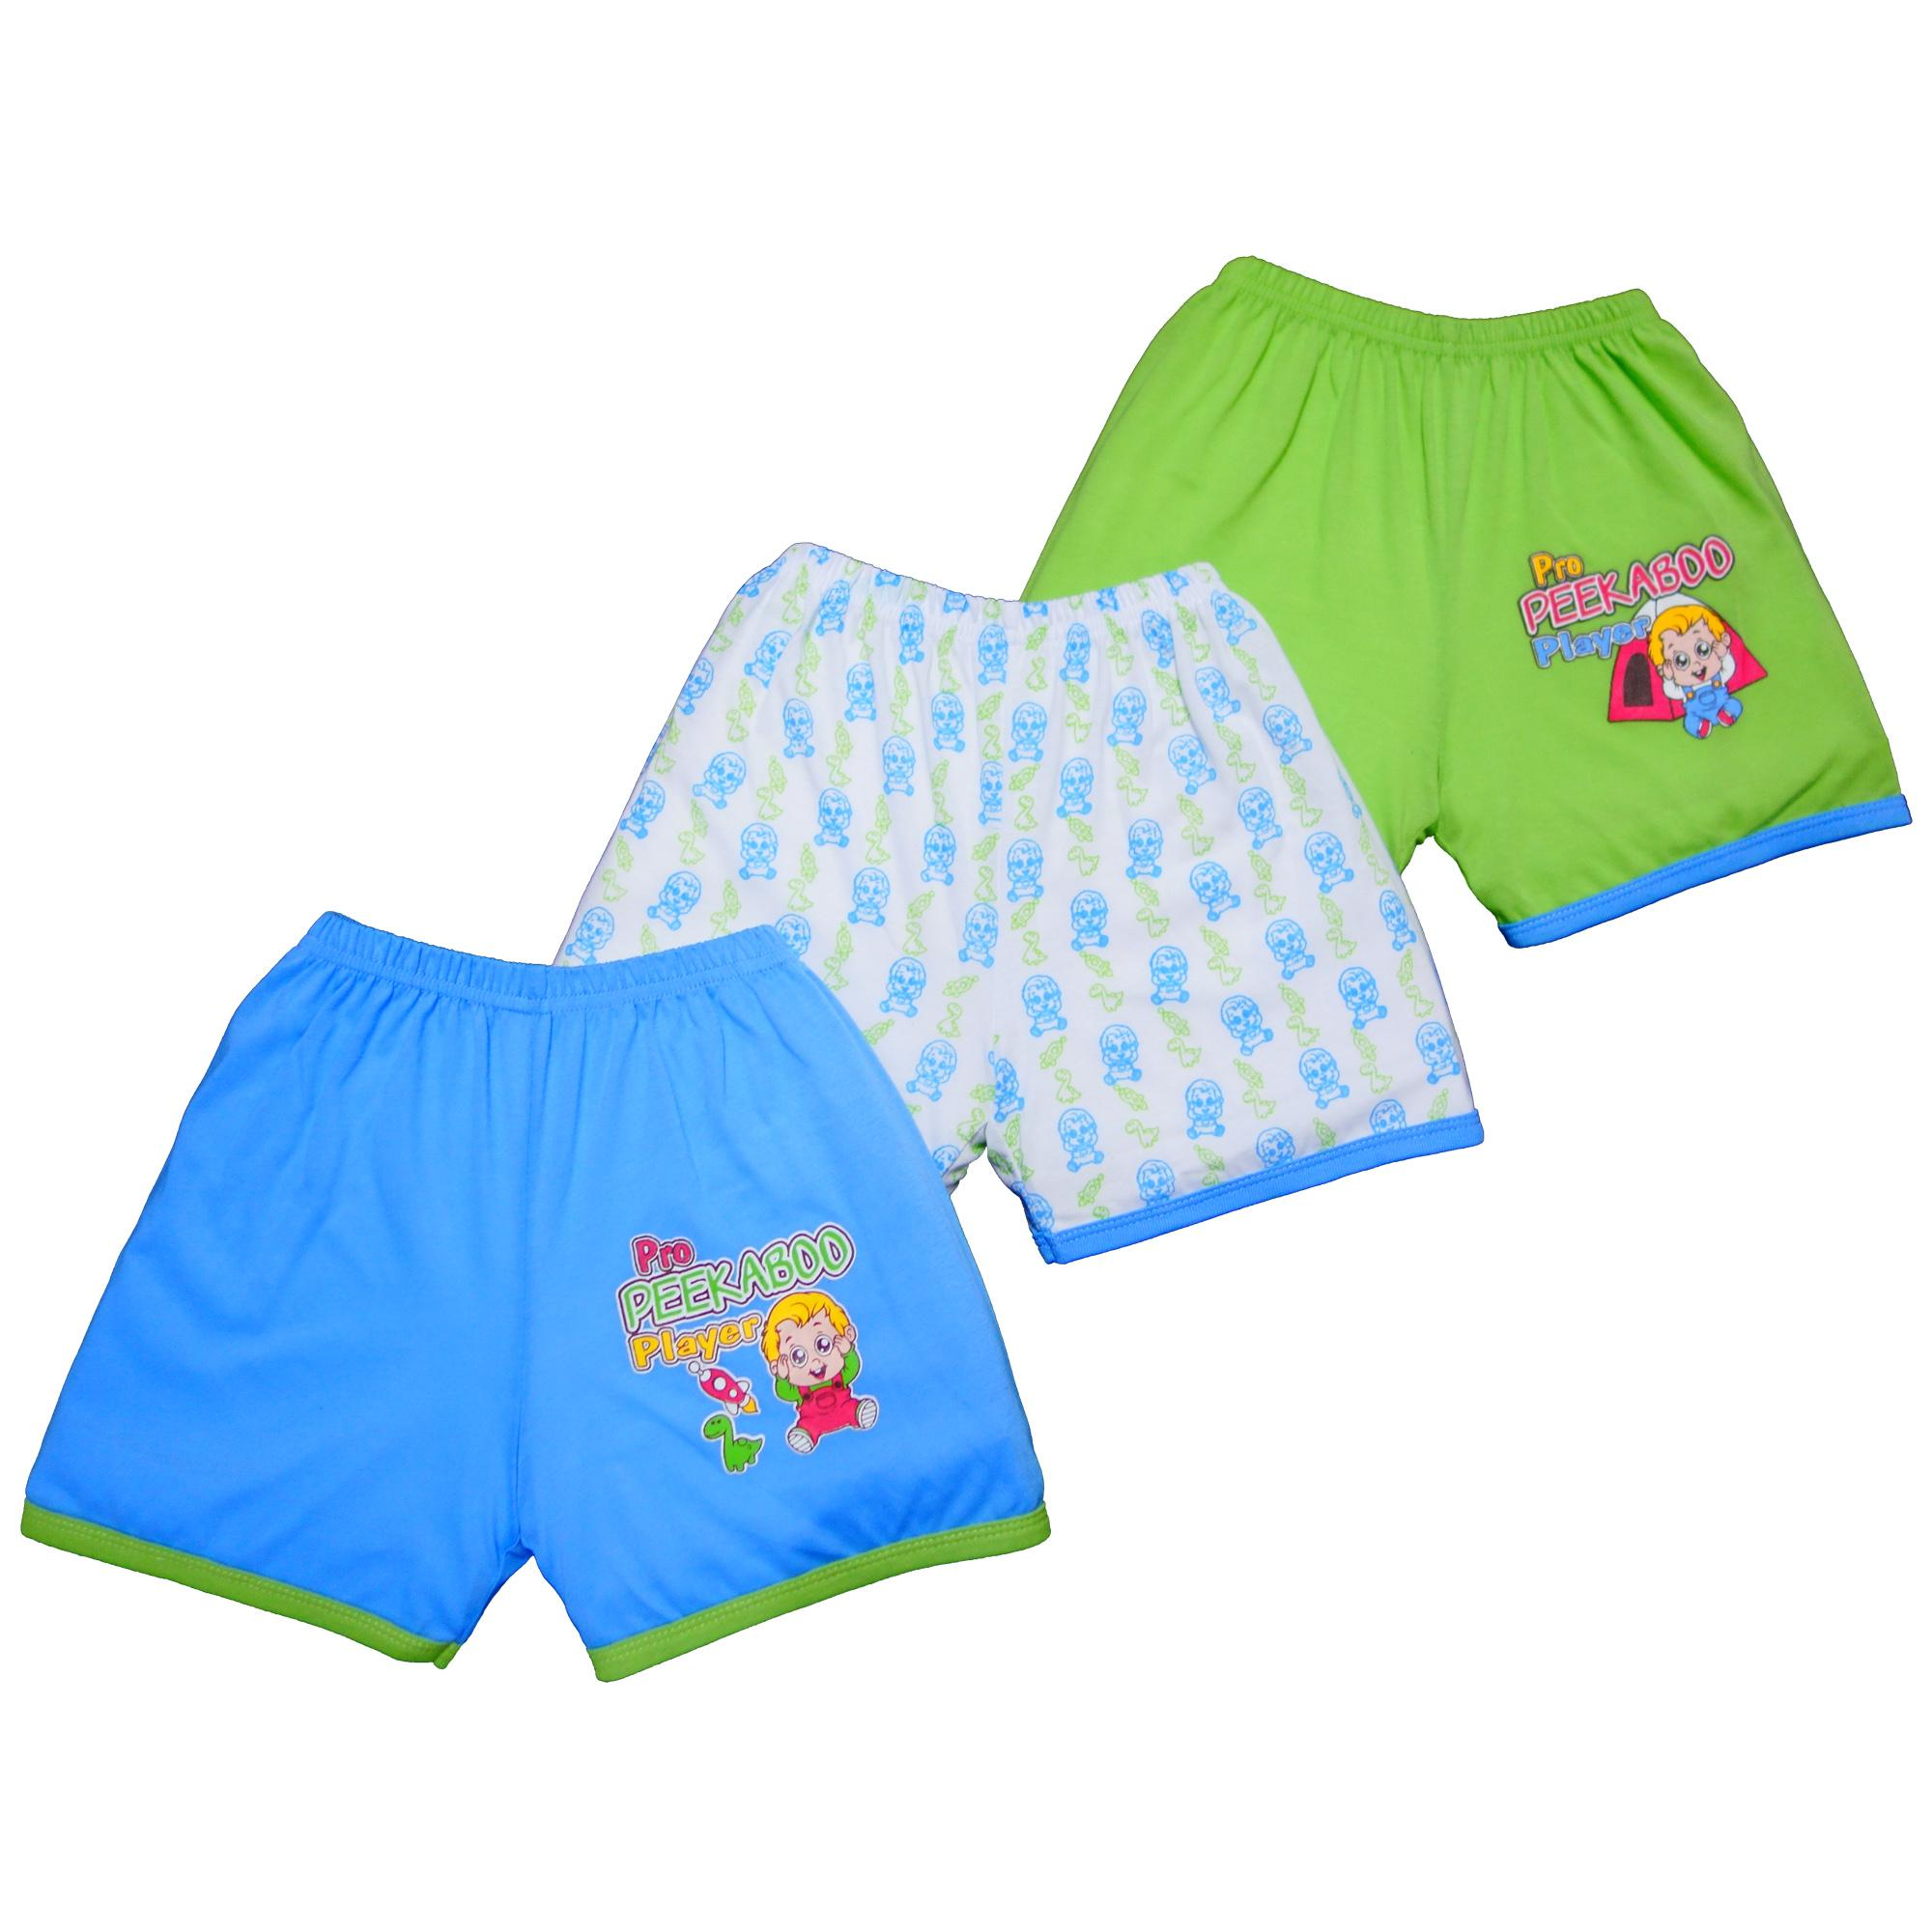 Froshie 3-Piece Baby Cotton Shorts (peekaboo) By Froshie.